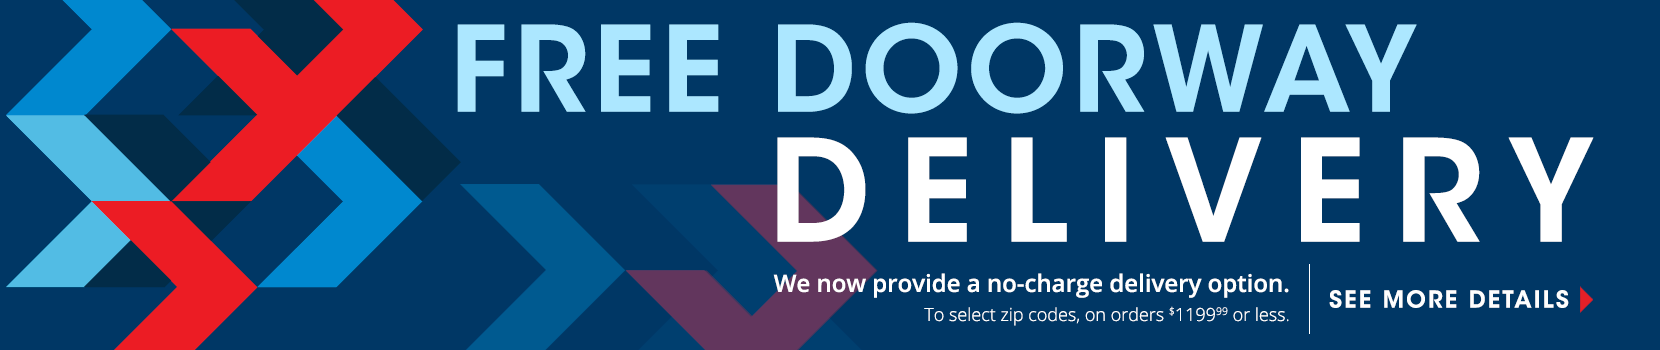 free doorway delivery. we now provide a no charge delivery option to select zip codes on orders $1200 or less. see details. shop now